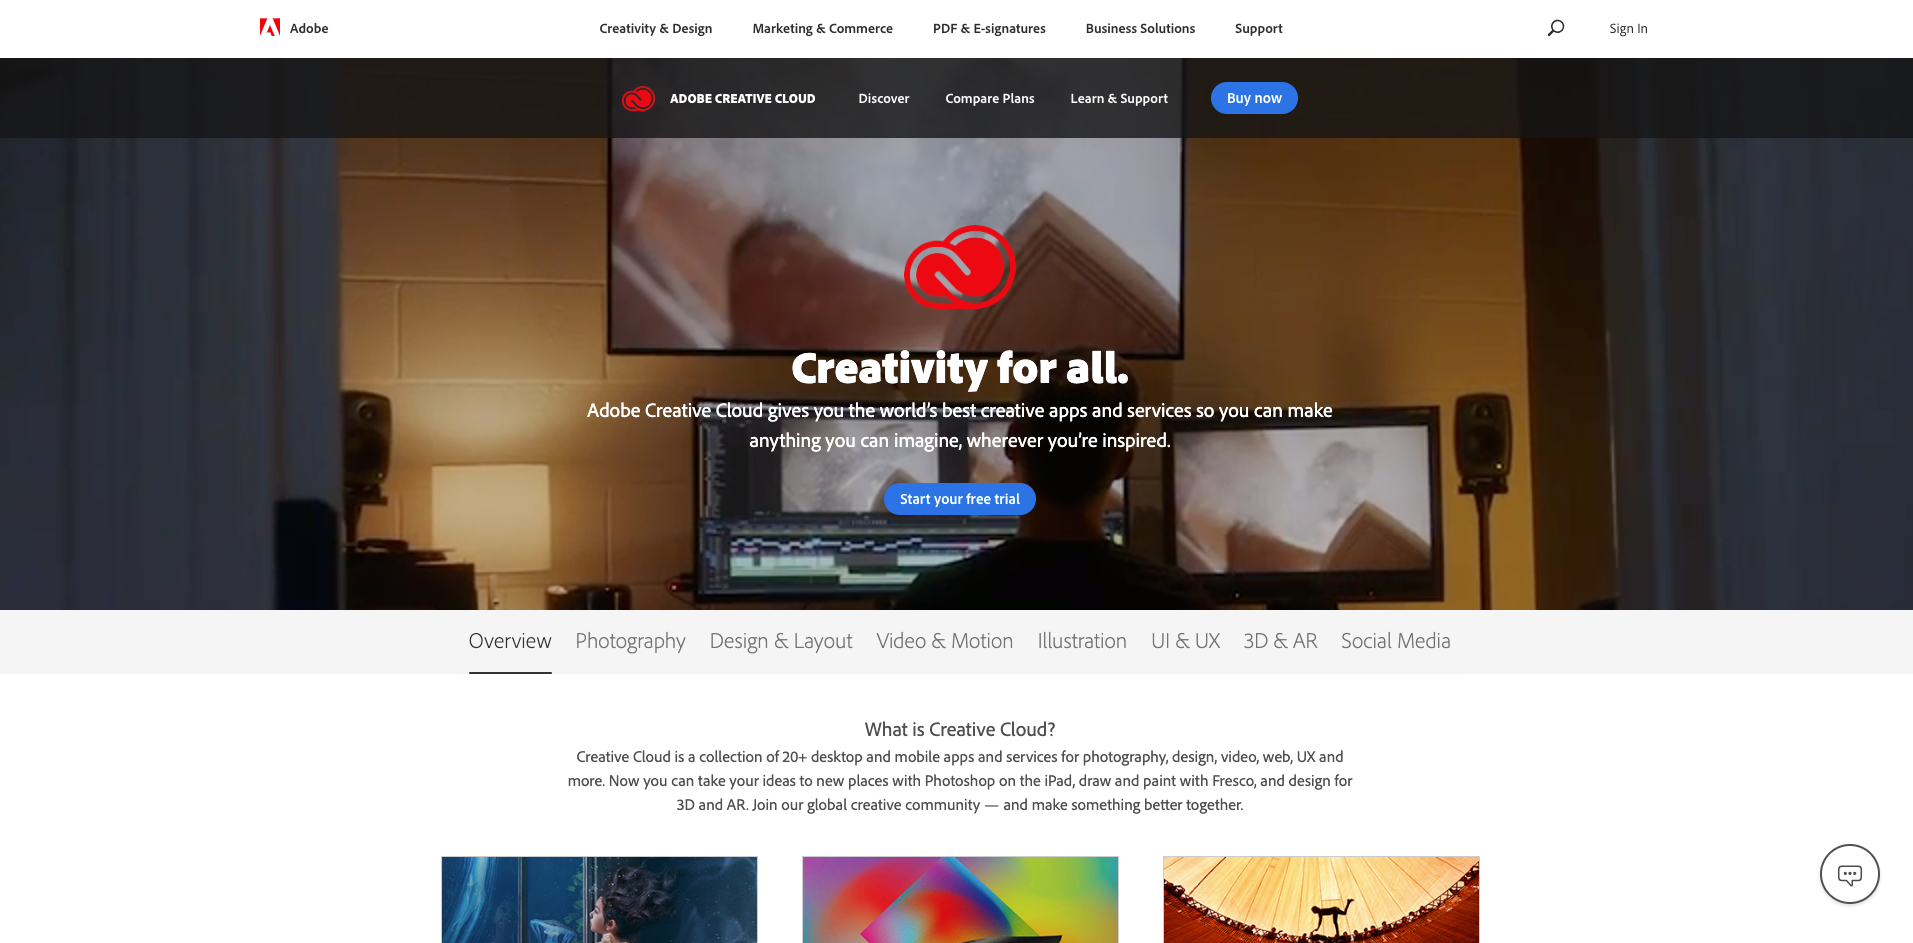 adobe creative cloud homepage screenshot